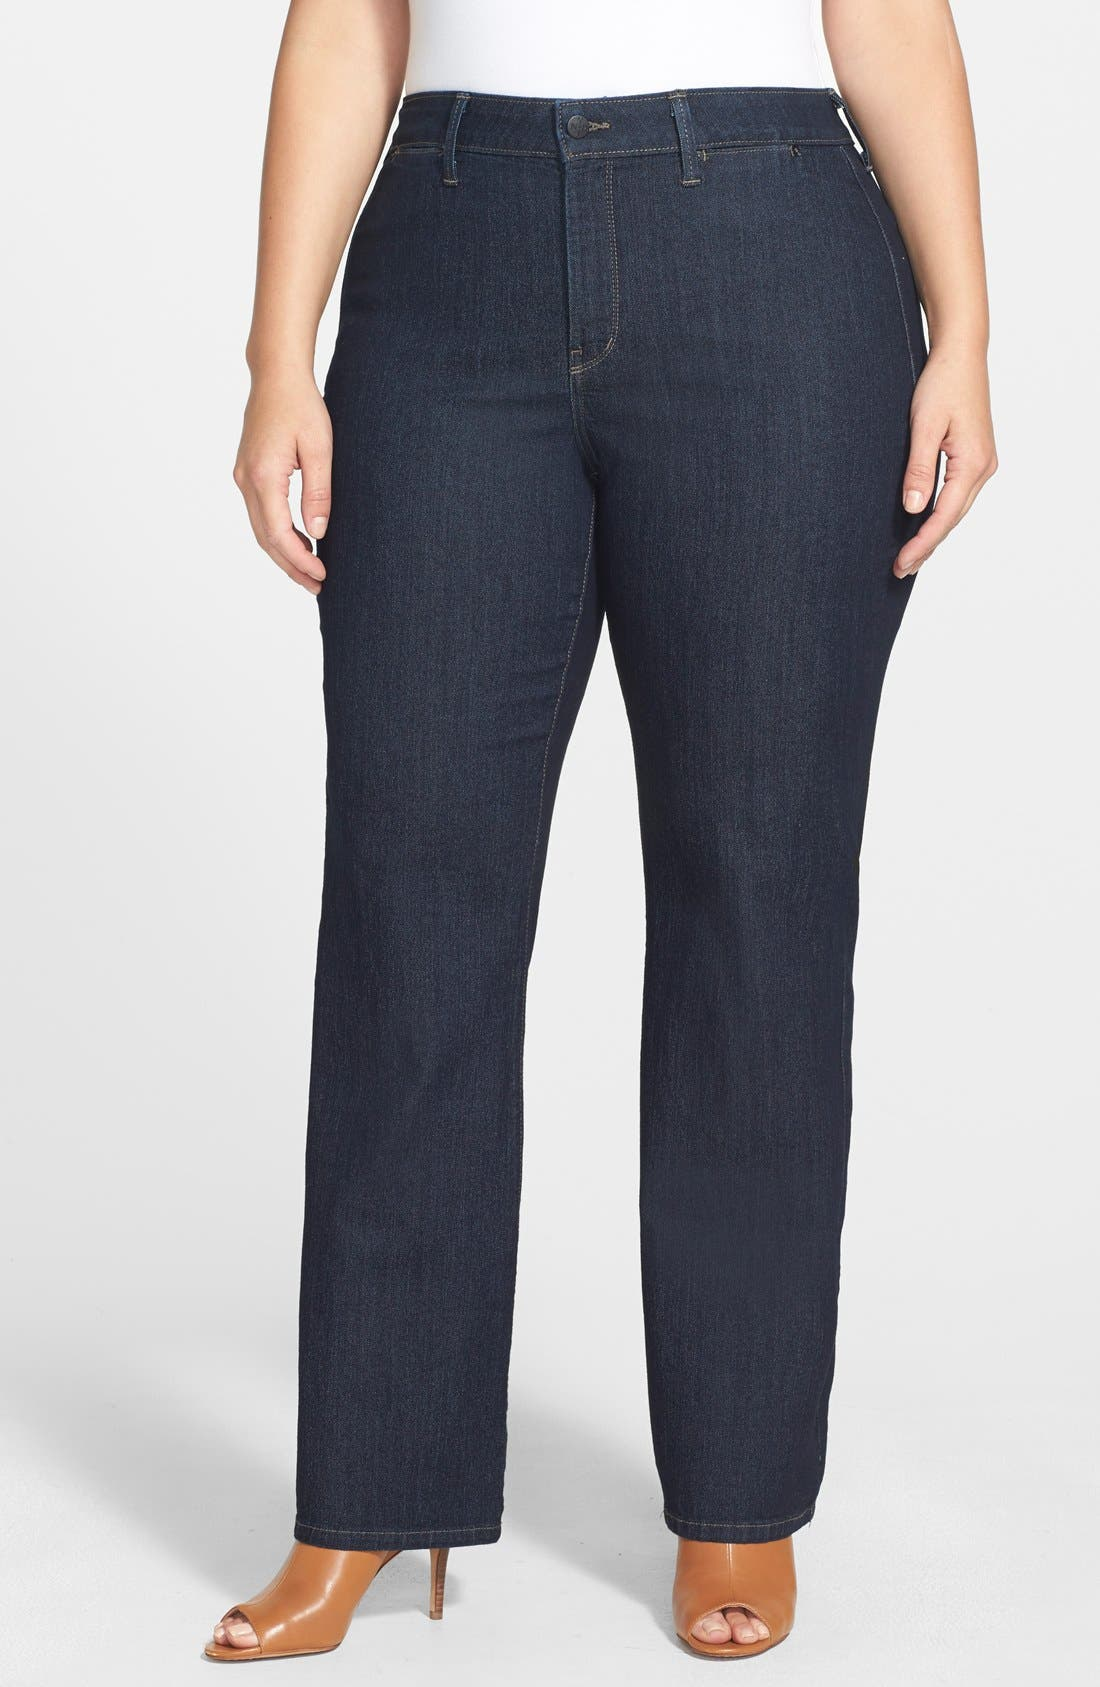 'ISABELLA' STRETCH TROUSER JEANS